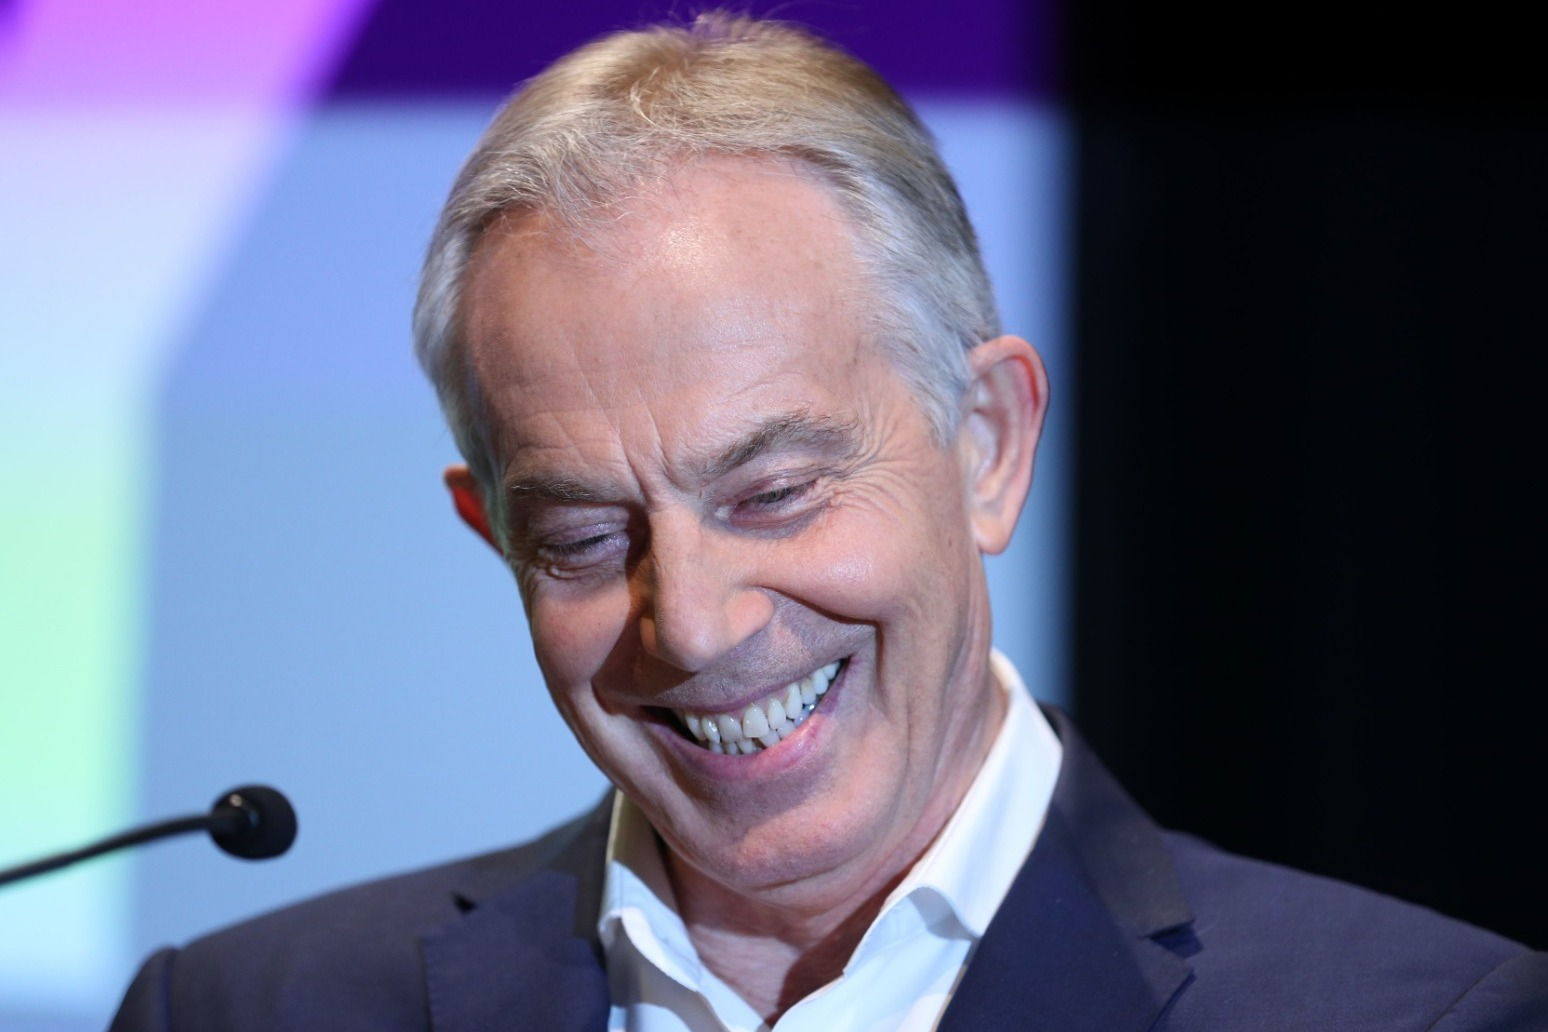 TONY BLAIR WARNS LABOUR MUST RENEW ITSELF AS \'PROGRESSIVE\' OR FACE SLOW DEMISE